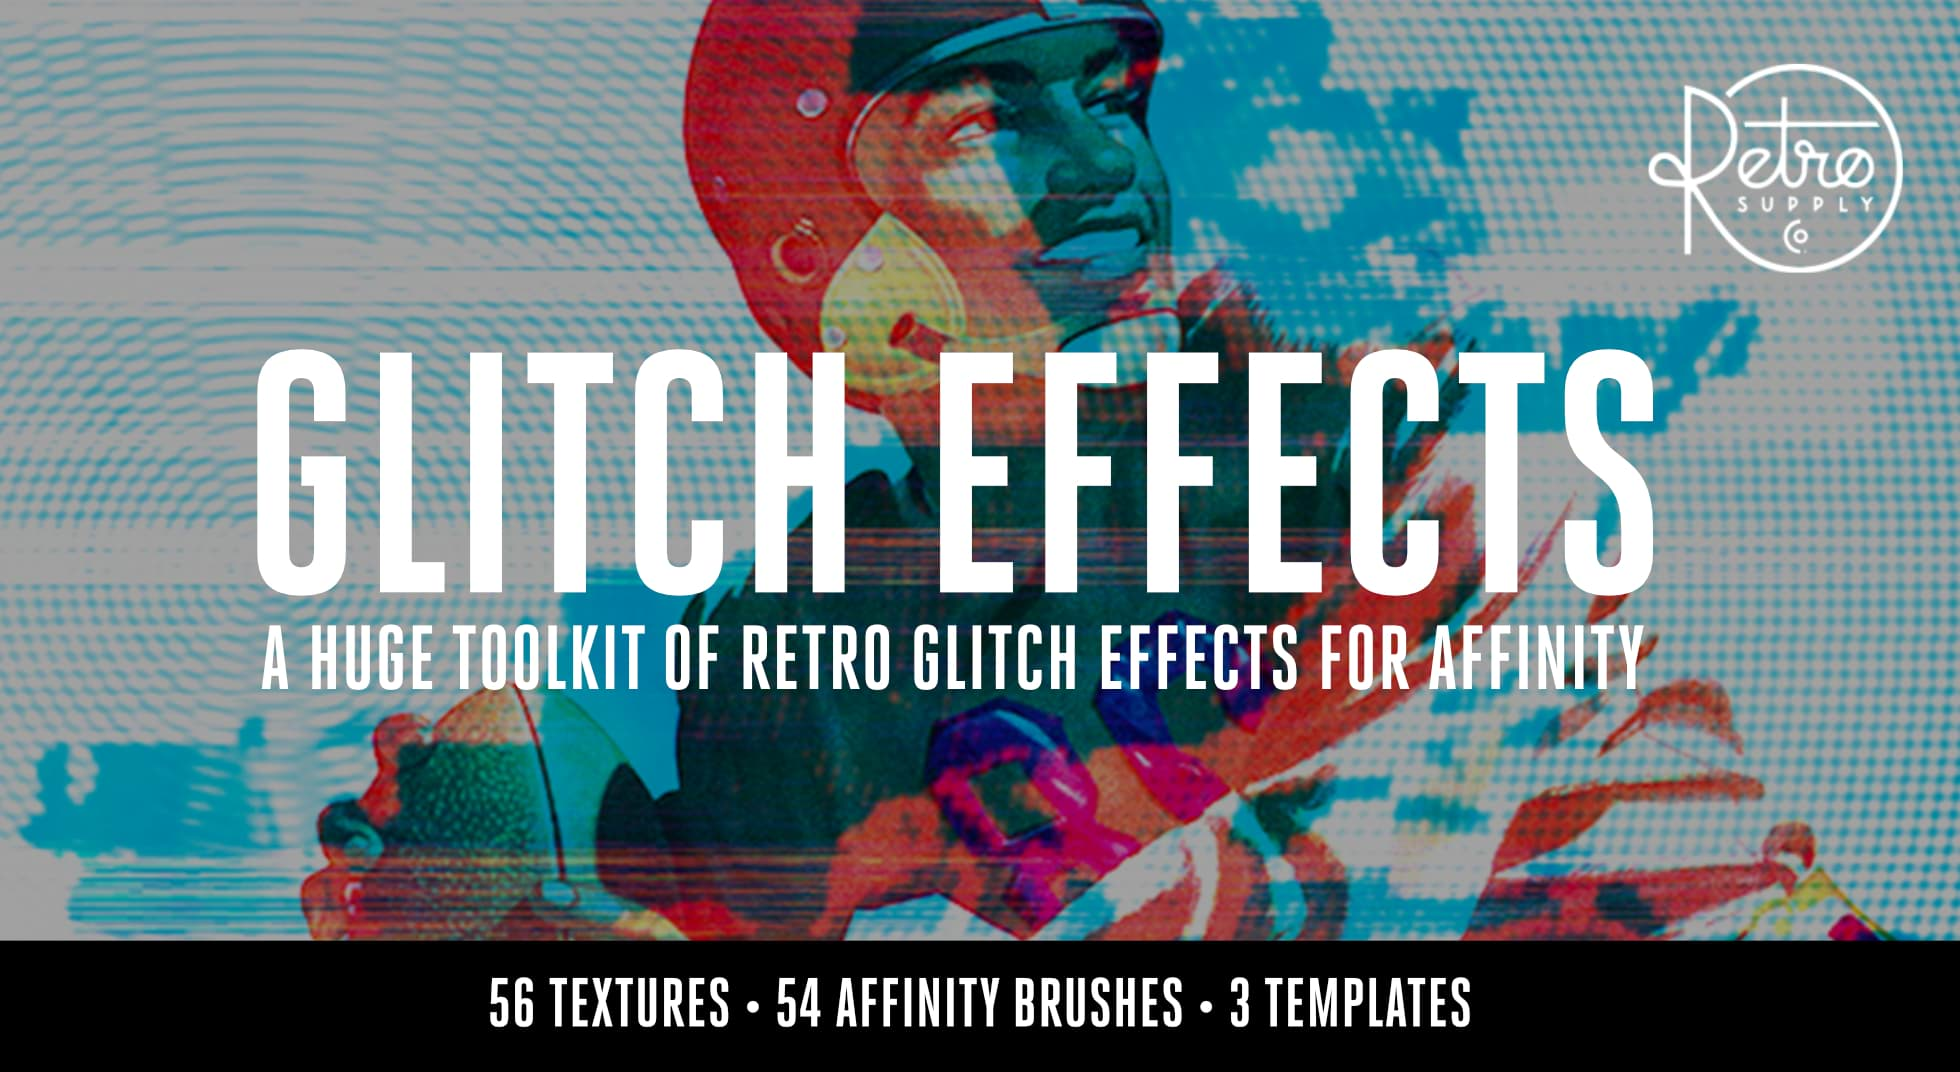 Glitch Effects for Affinity by RetroSupply Co  - Affinity Store